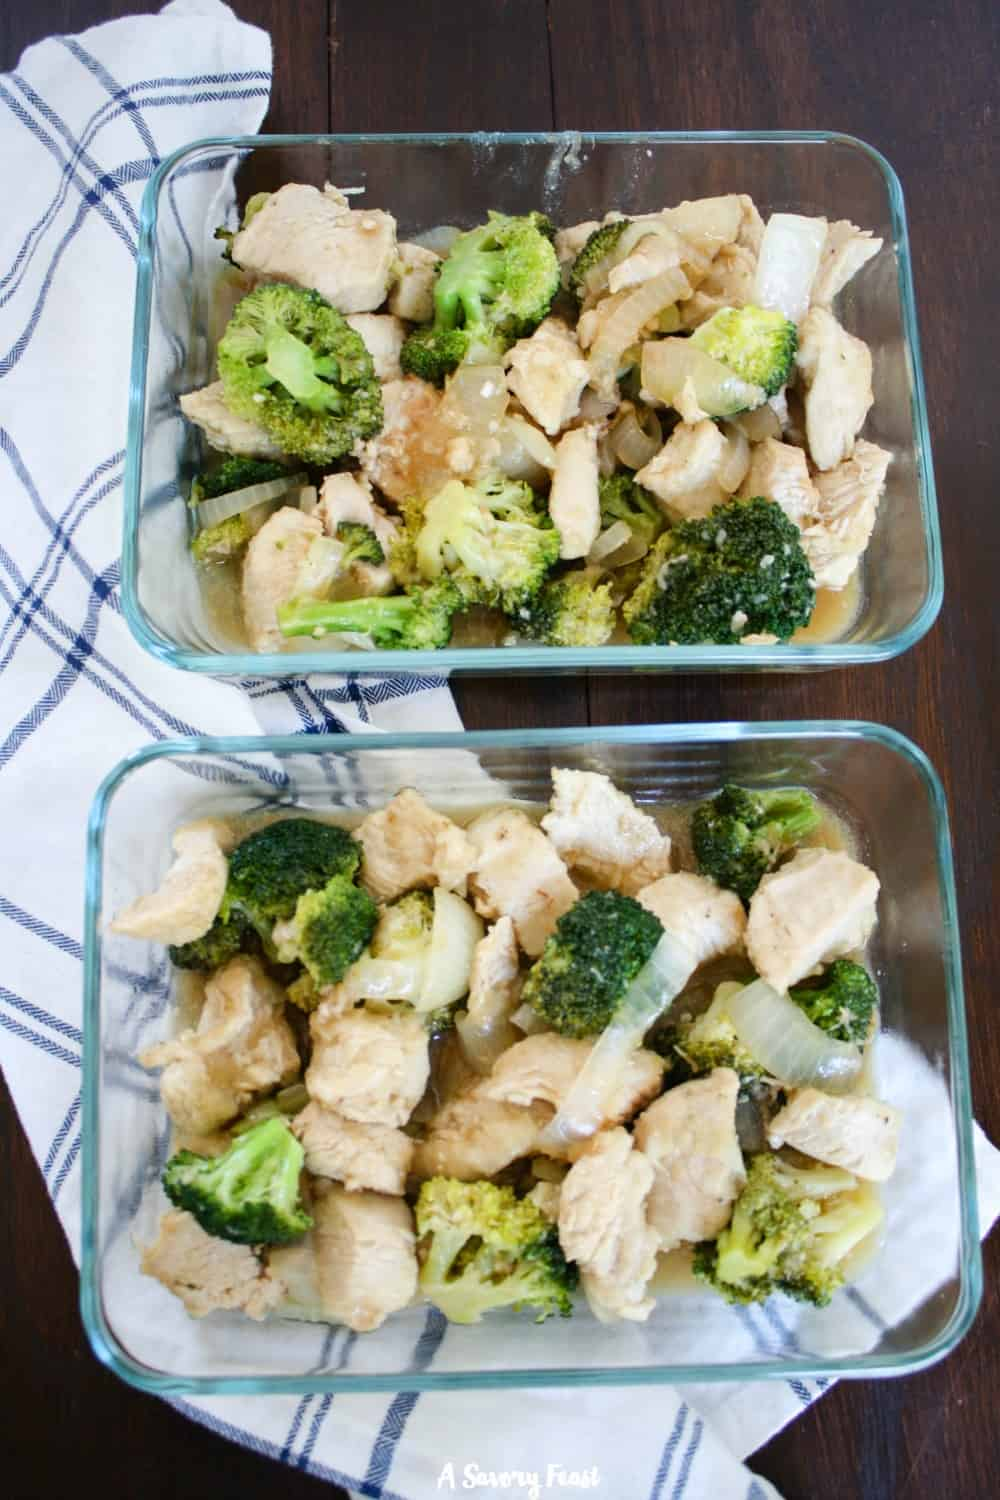 Easy Chicken and Broccoli Stir-Fry, great for meal prepping!